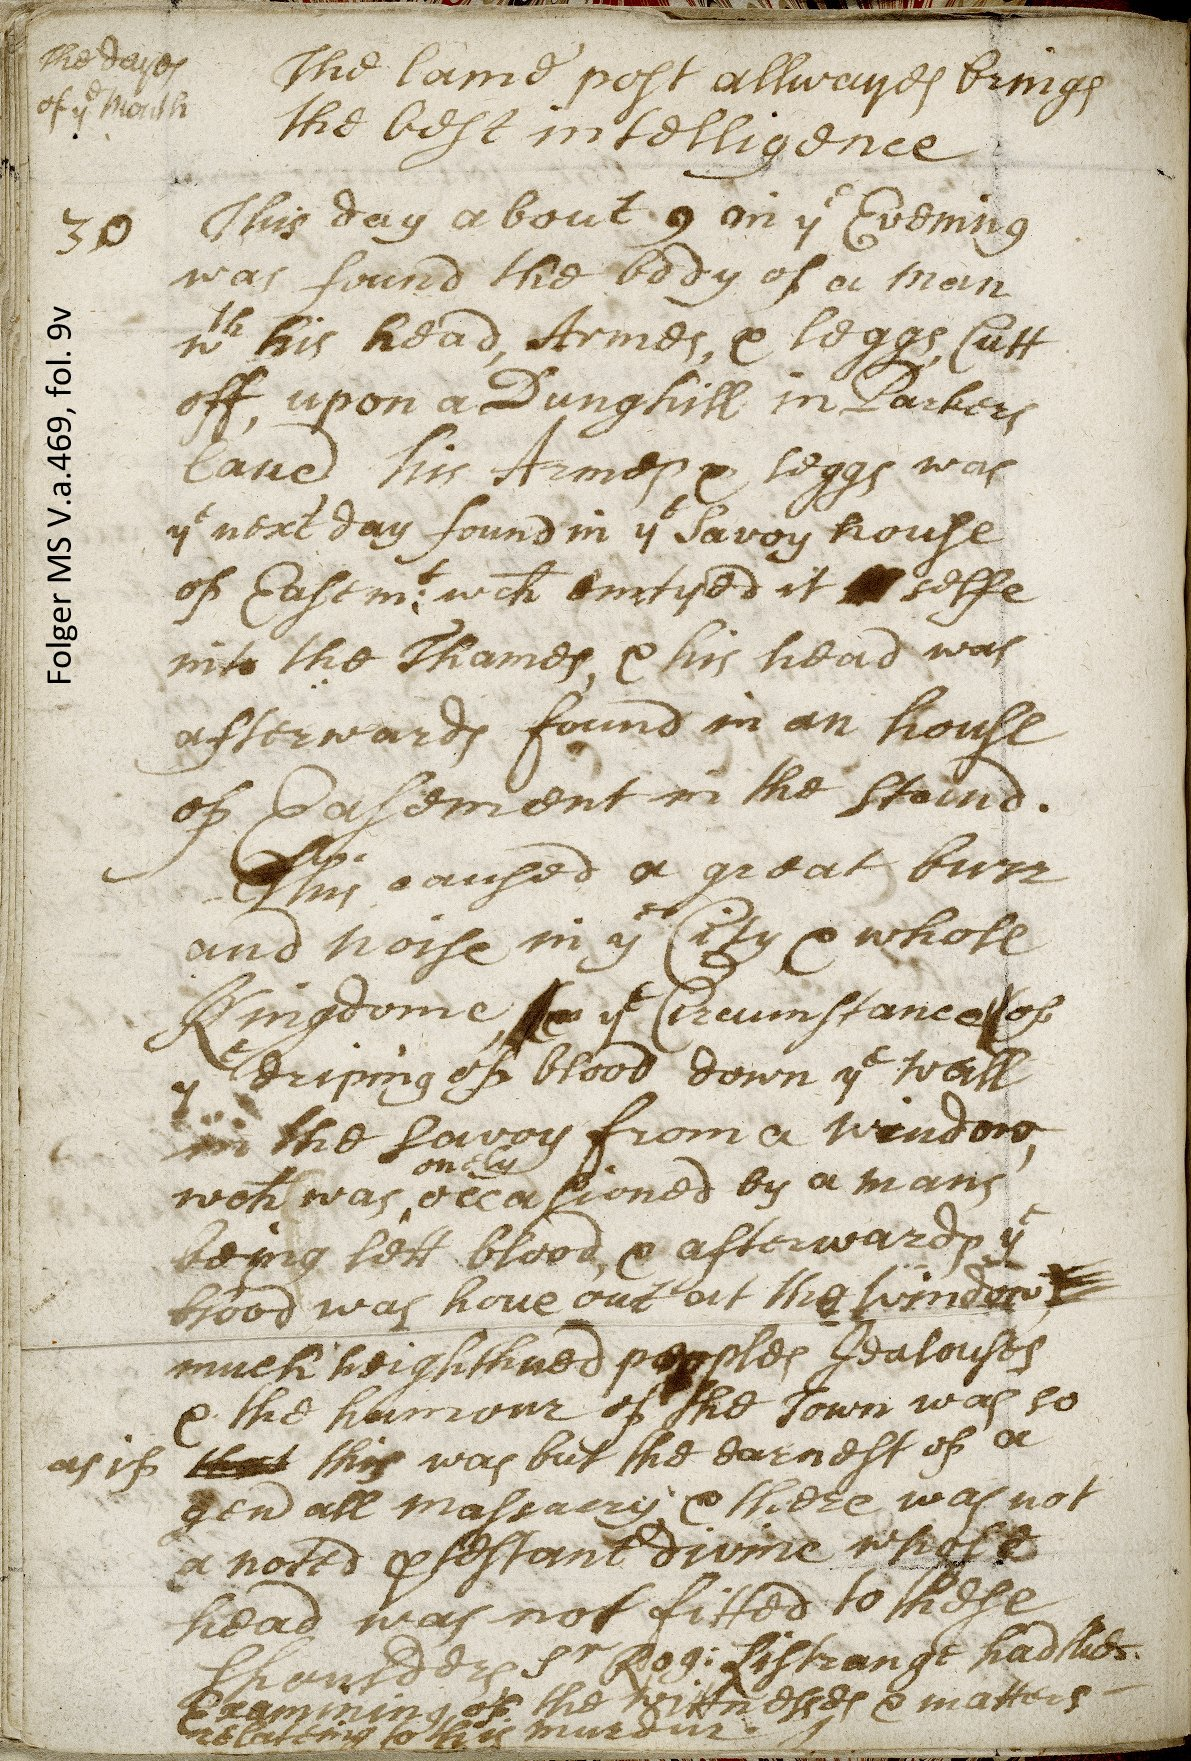 Diary entry for January 30, 1688